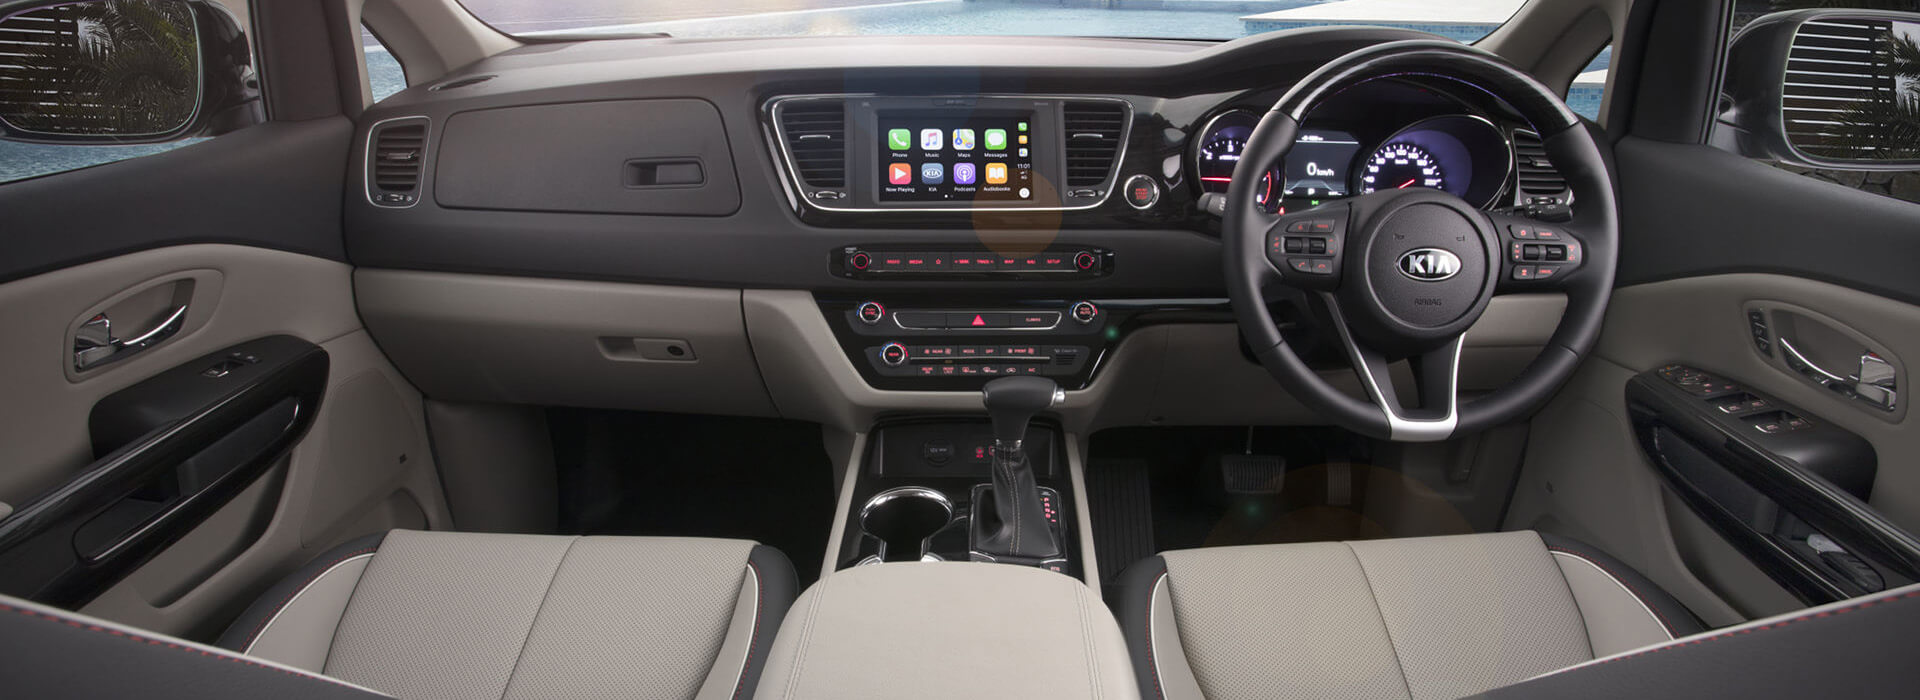 New Kia Carnival for sale in Cessnock Hunter Valley - Cessnock Kia